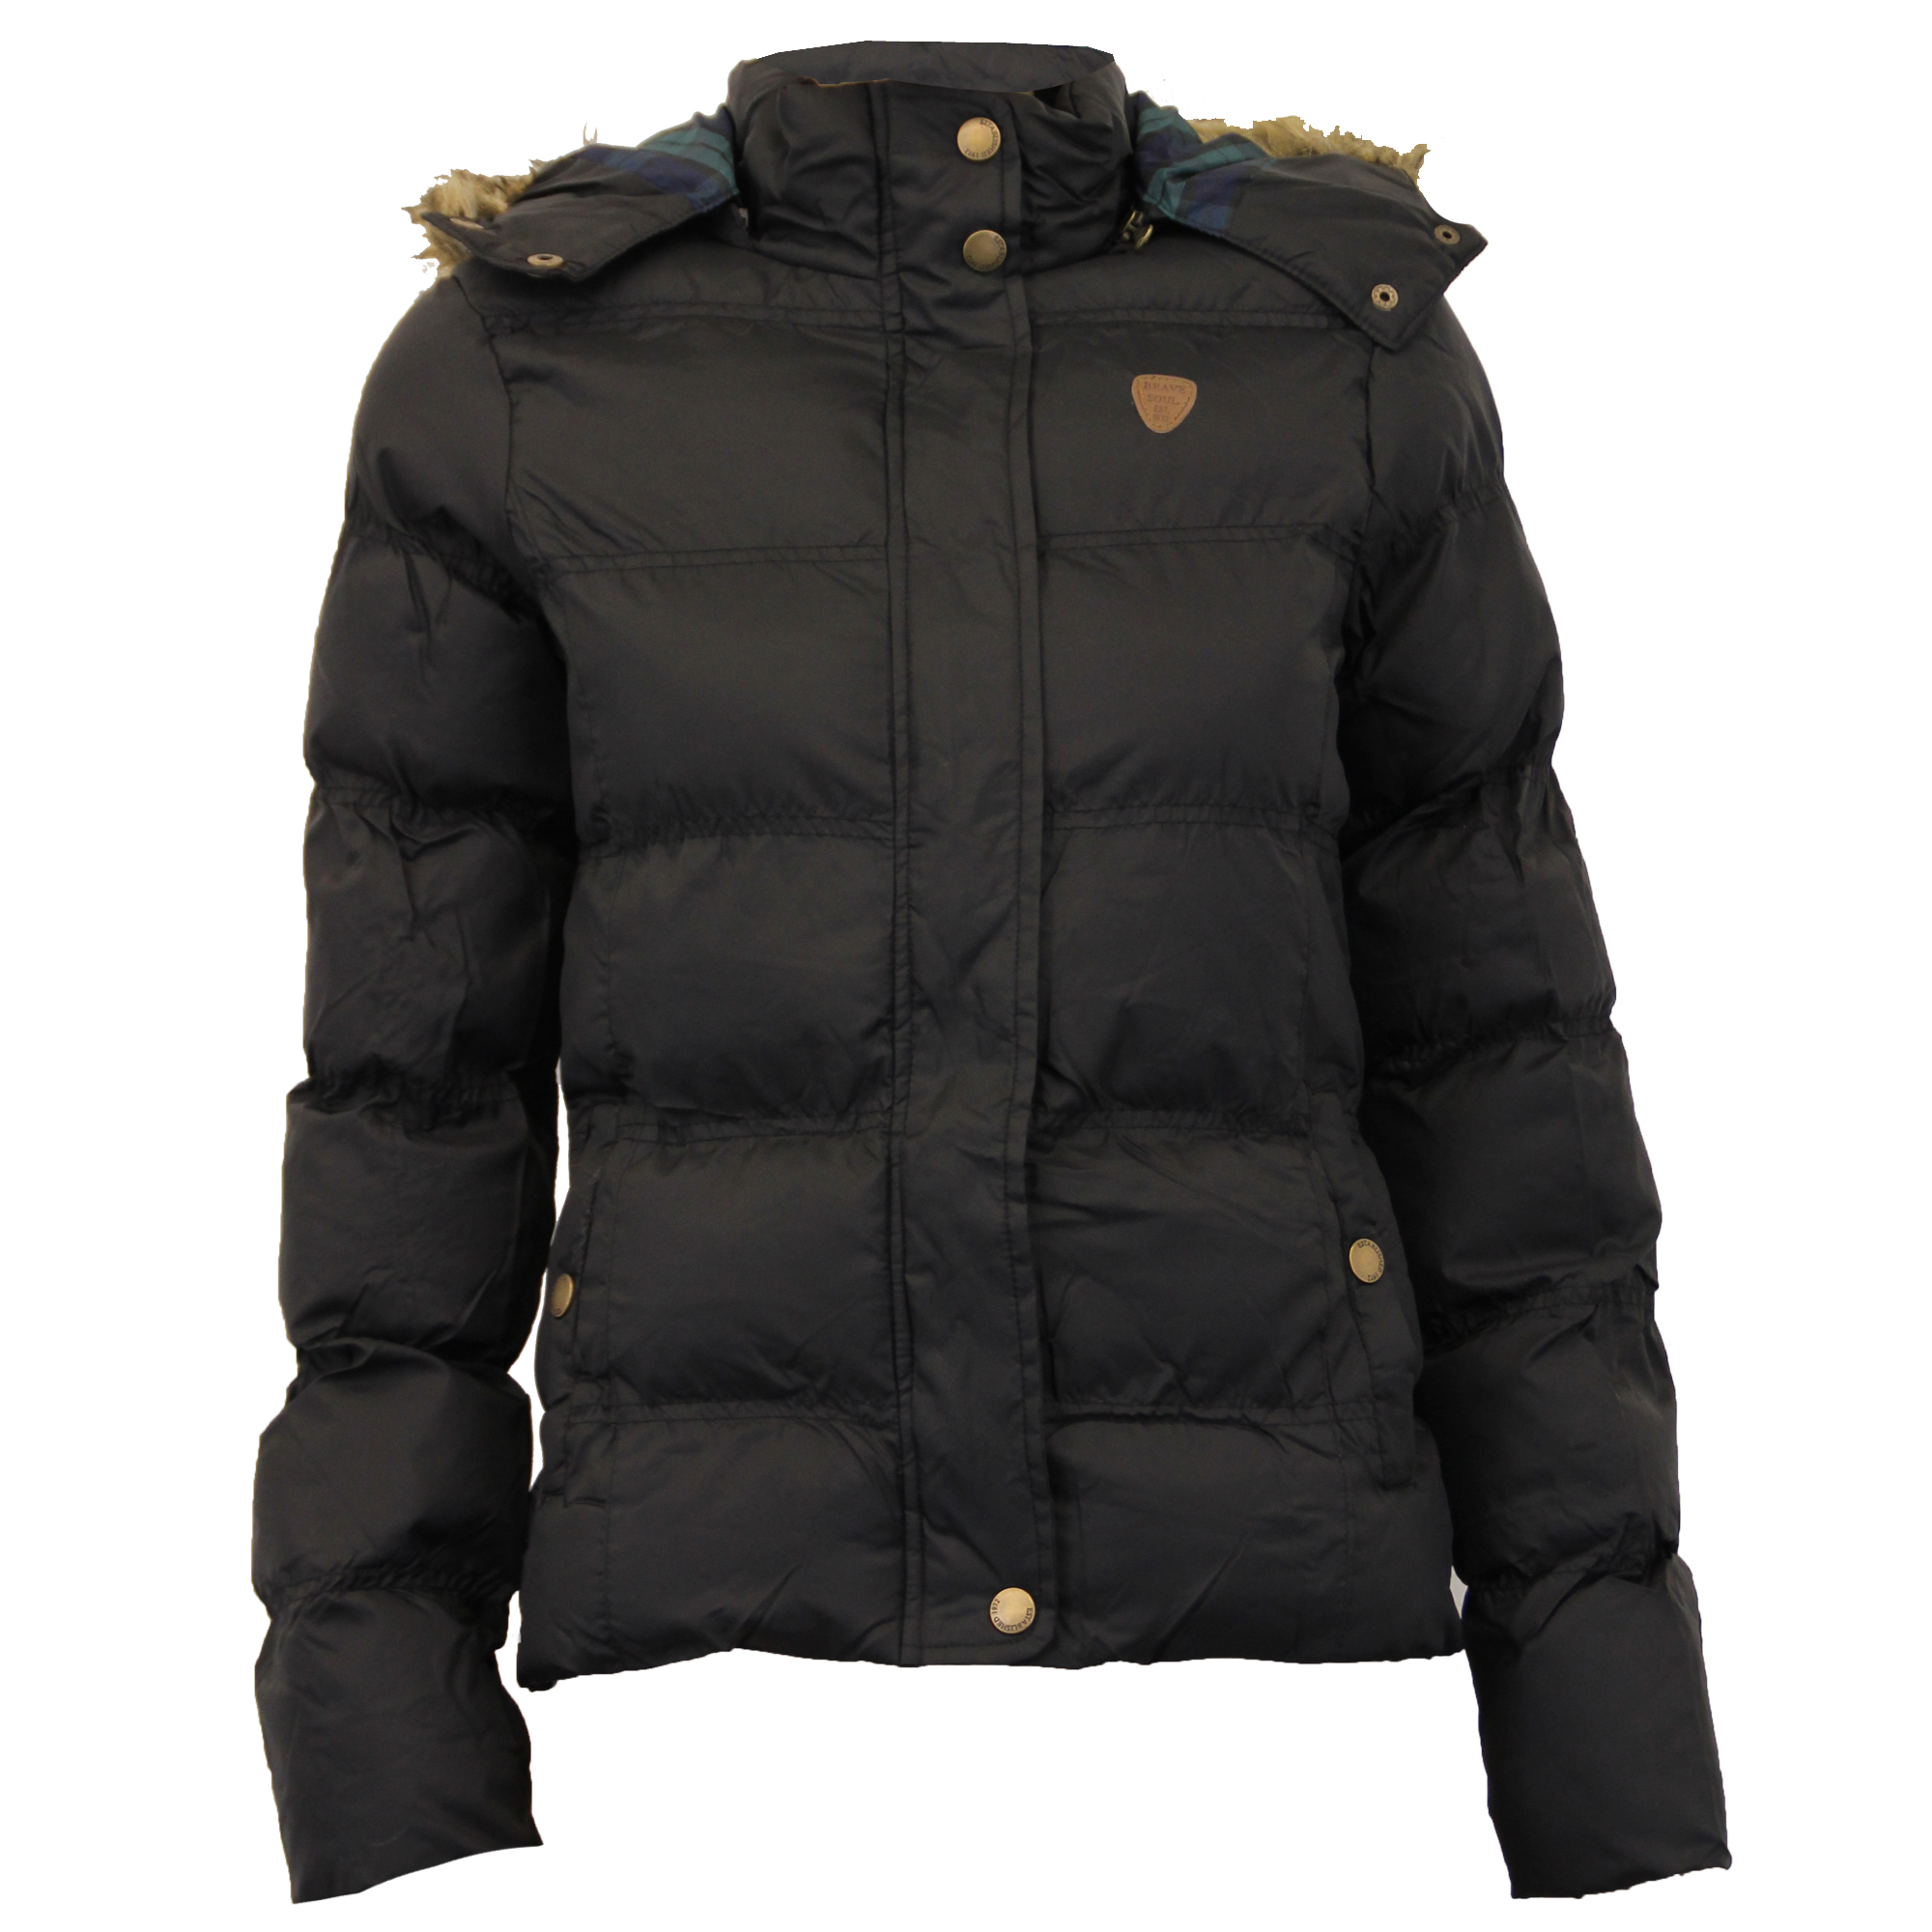 Ladies Jacket Brave Soul Womens Coat BIG Sizes Hooded ...